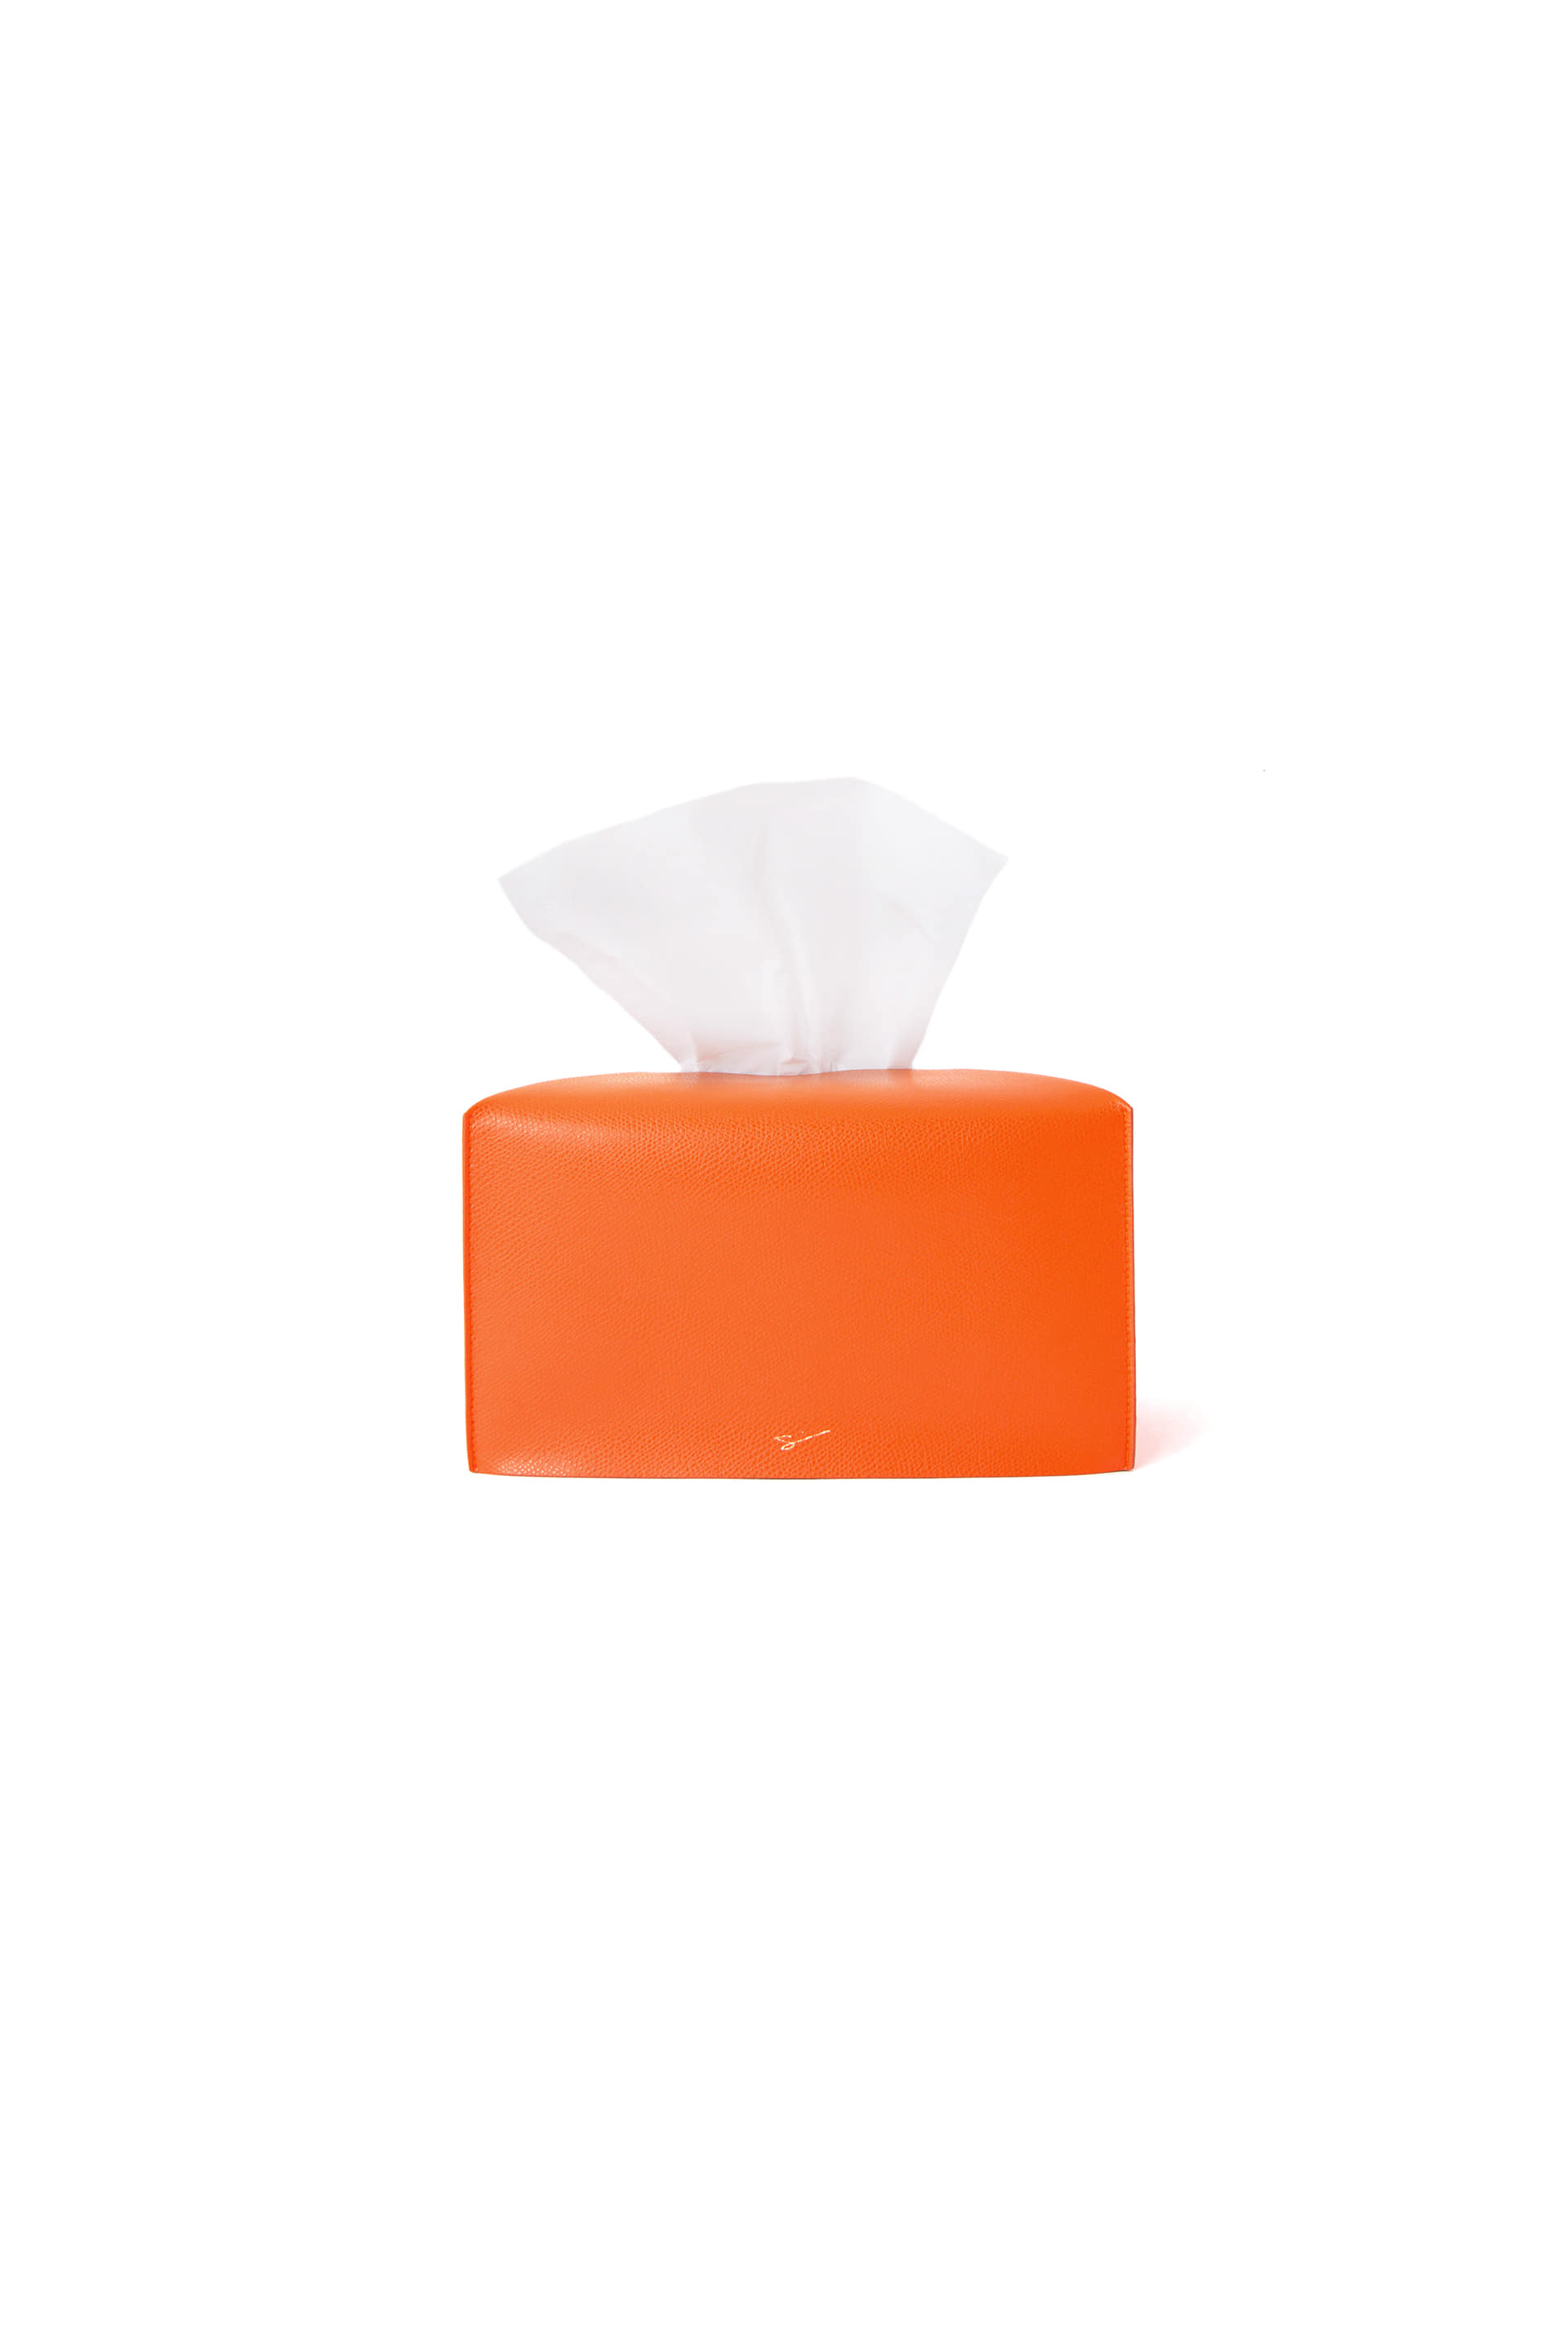 TISSUE CASE L 28 Henri Orange